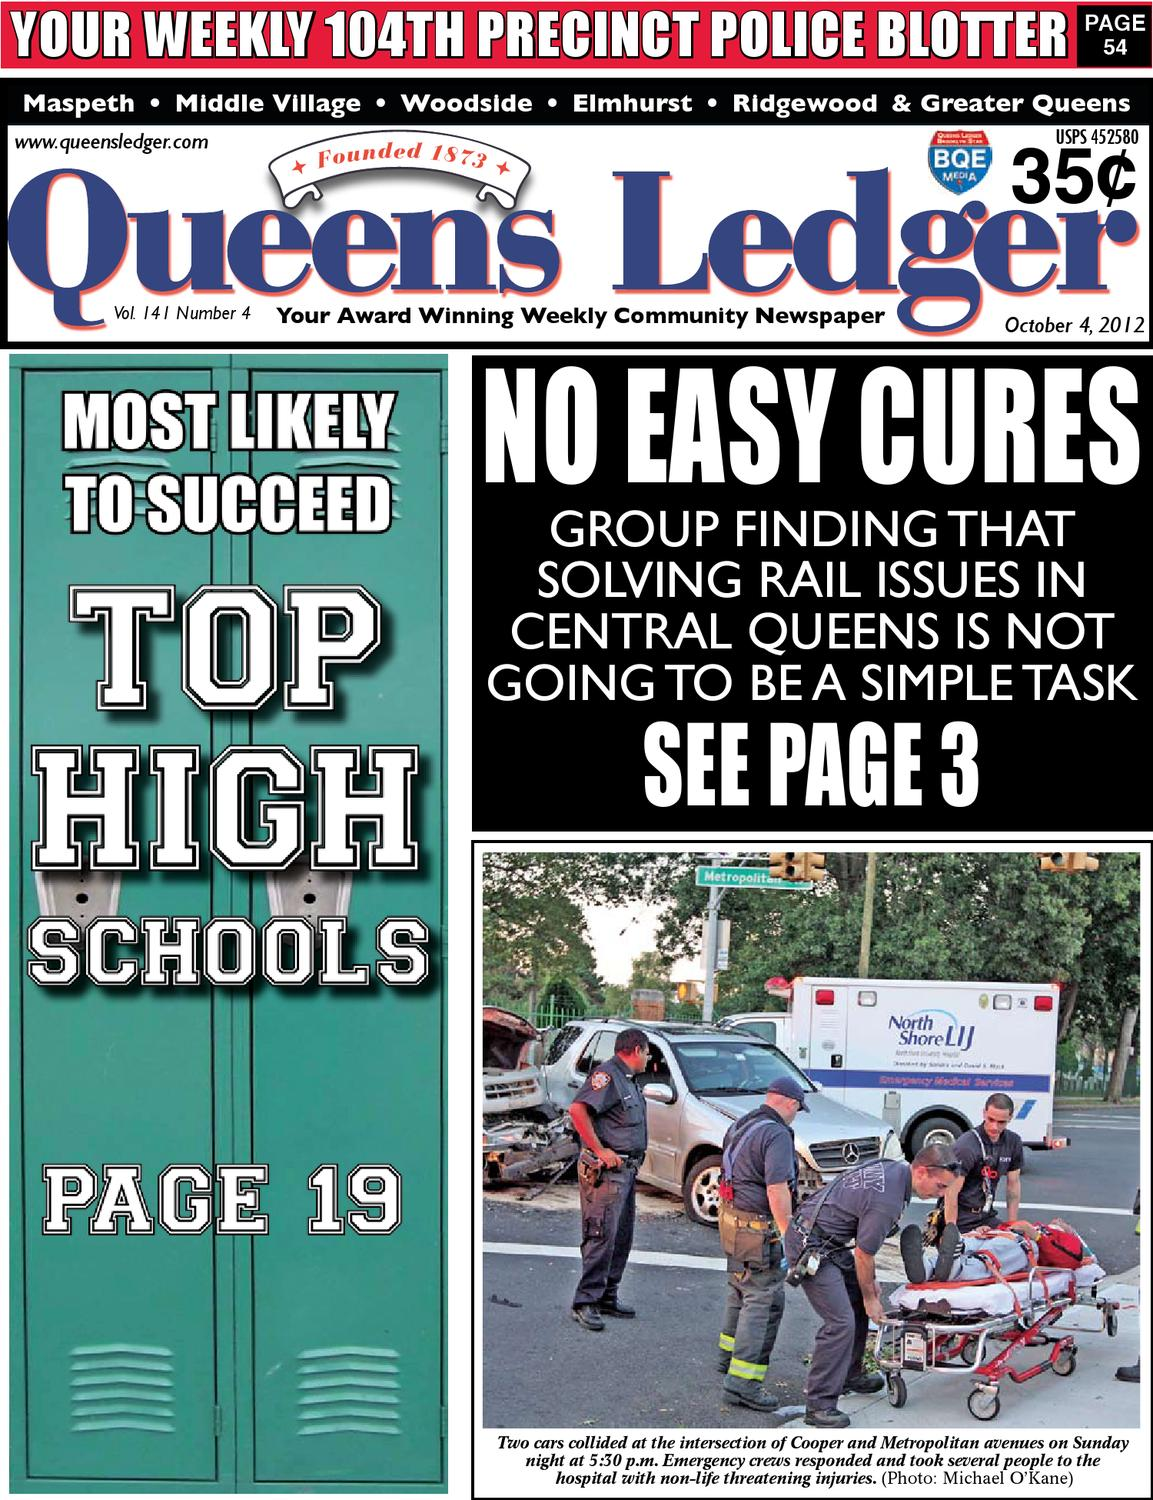 Queens Ledger 2012 High School Issue By Bqe Media Queens